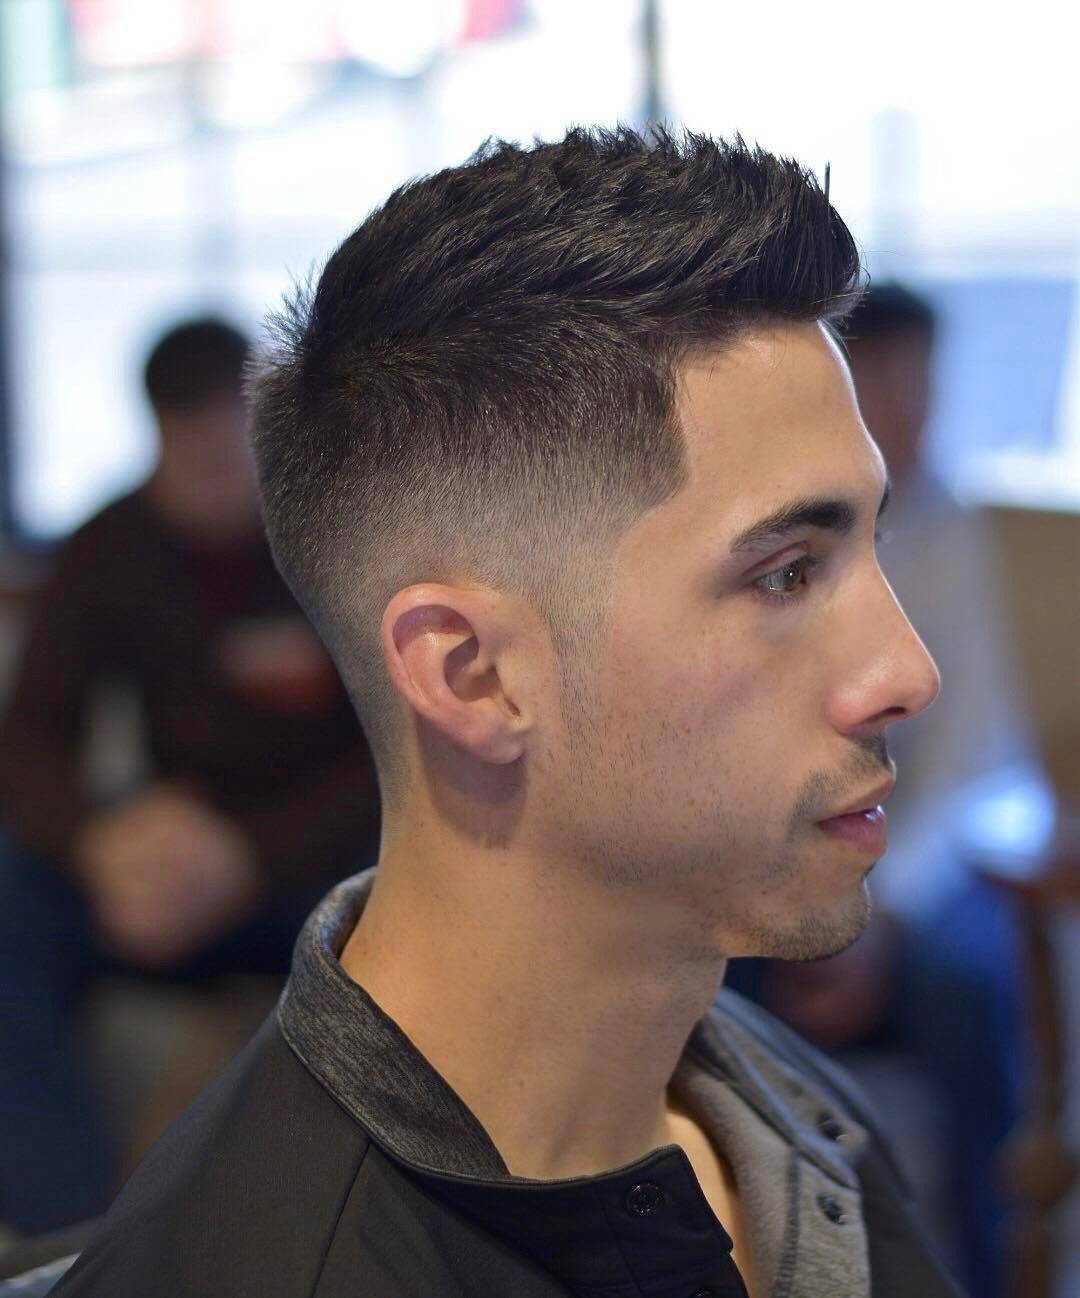 cool 50 classy military haircut styles - choose yours